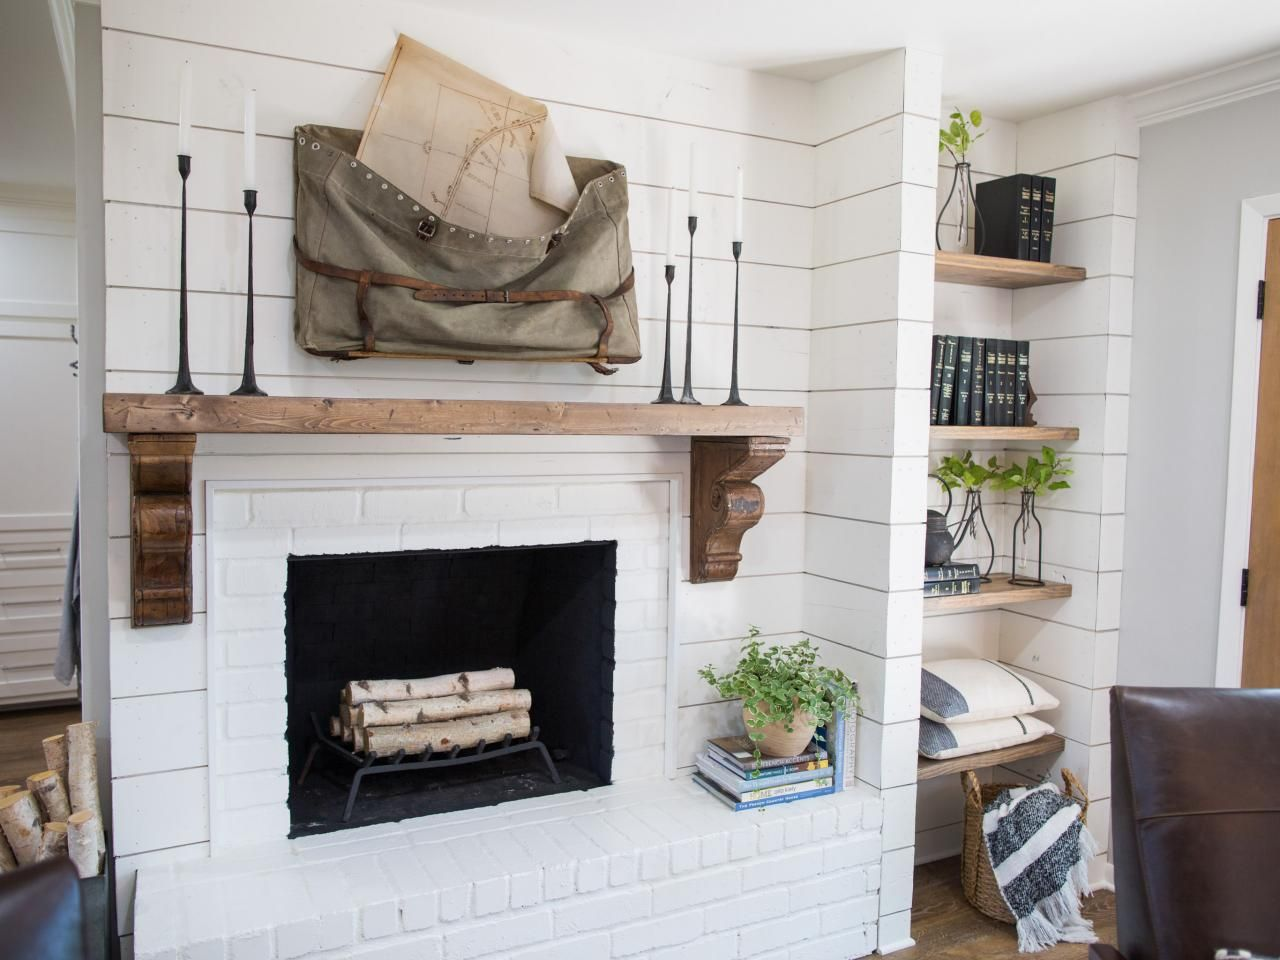 Find The Best Of Fixer Upper From Hgtv Love This Mantel Reclaimed Wood Beam With Antique Corbels